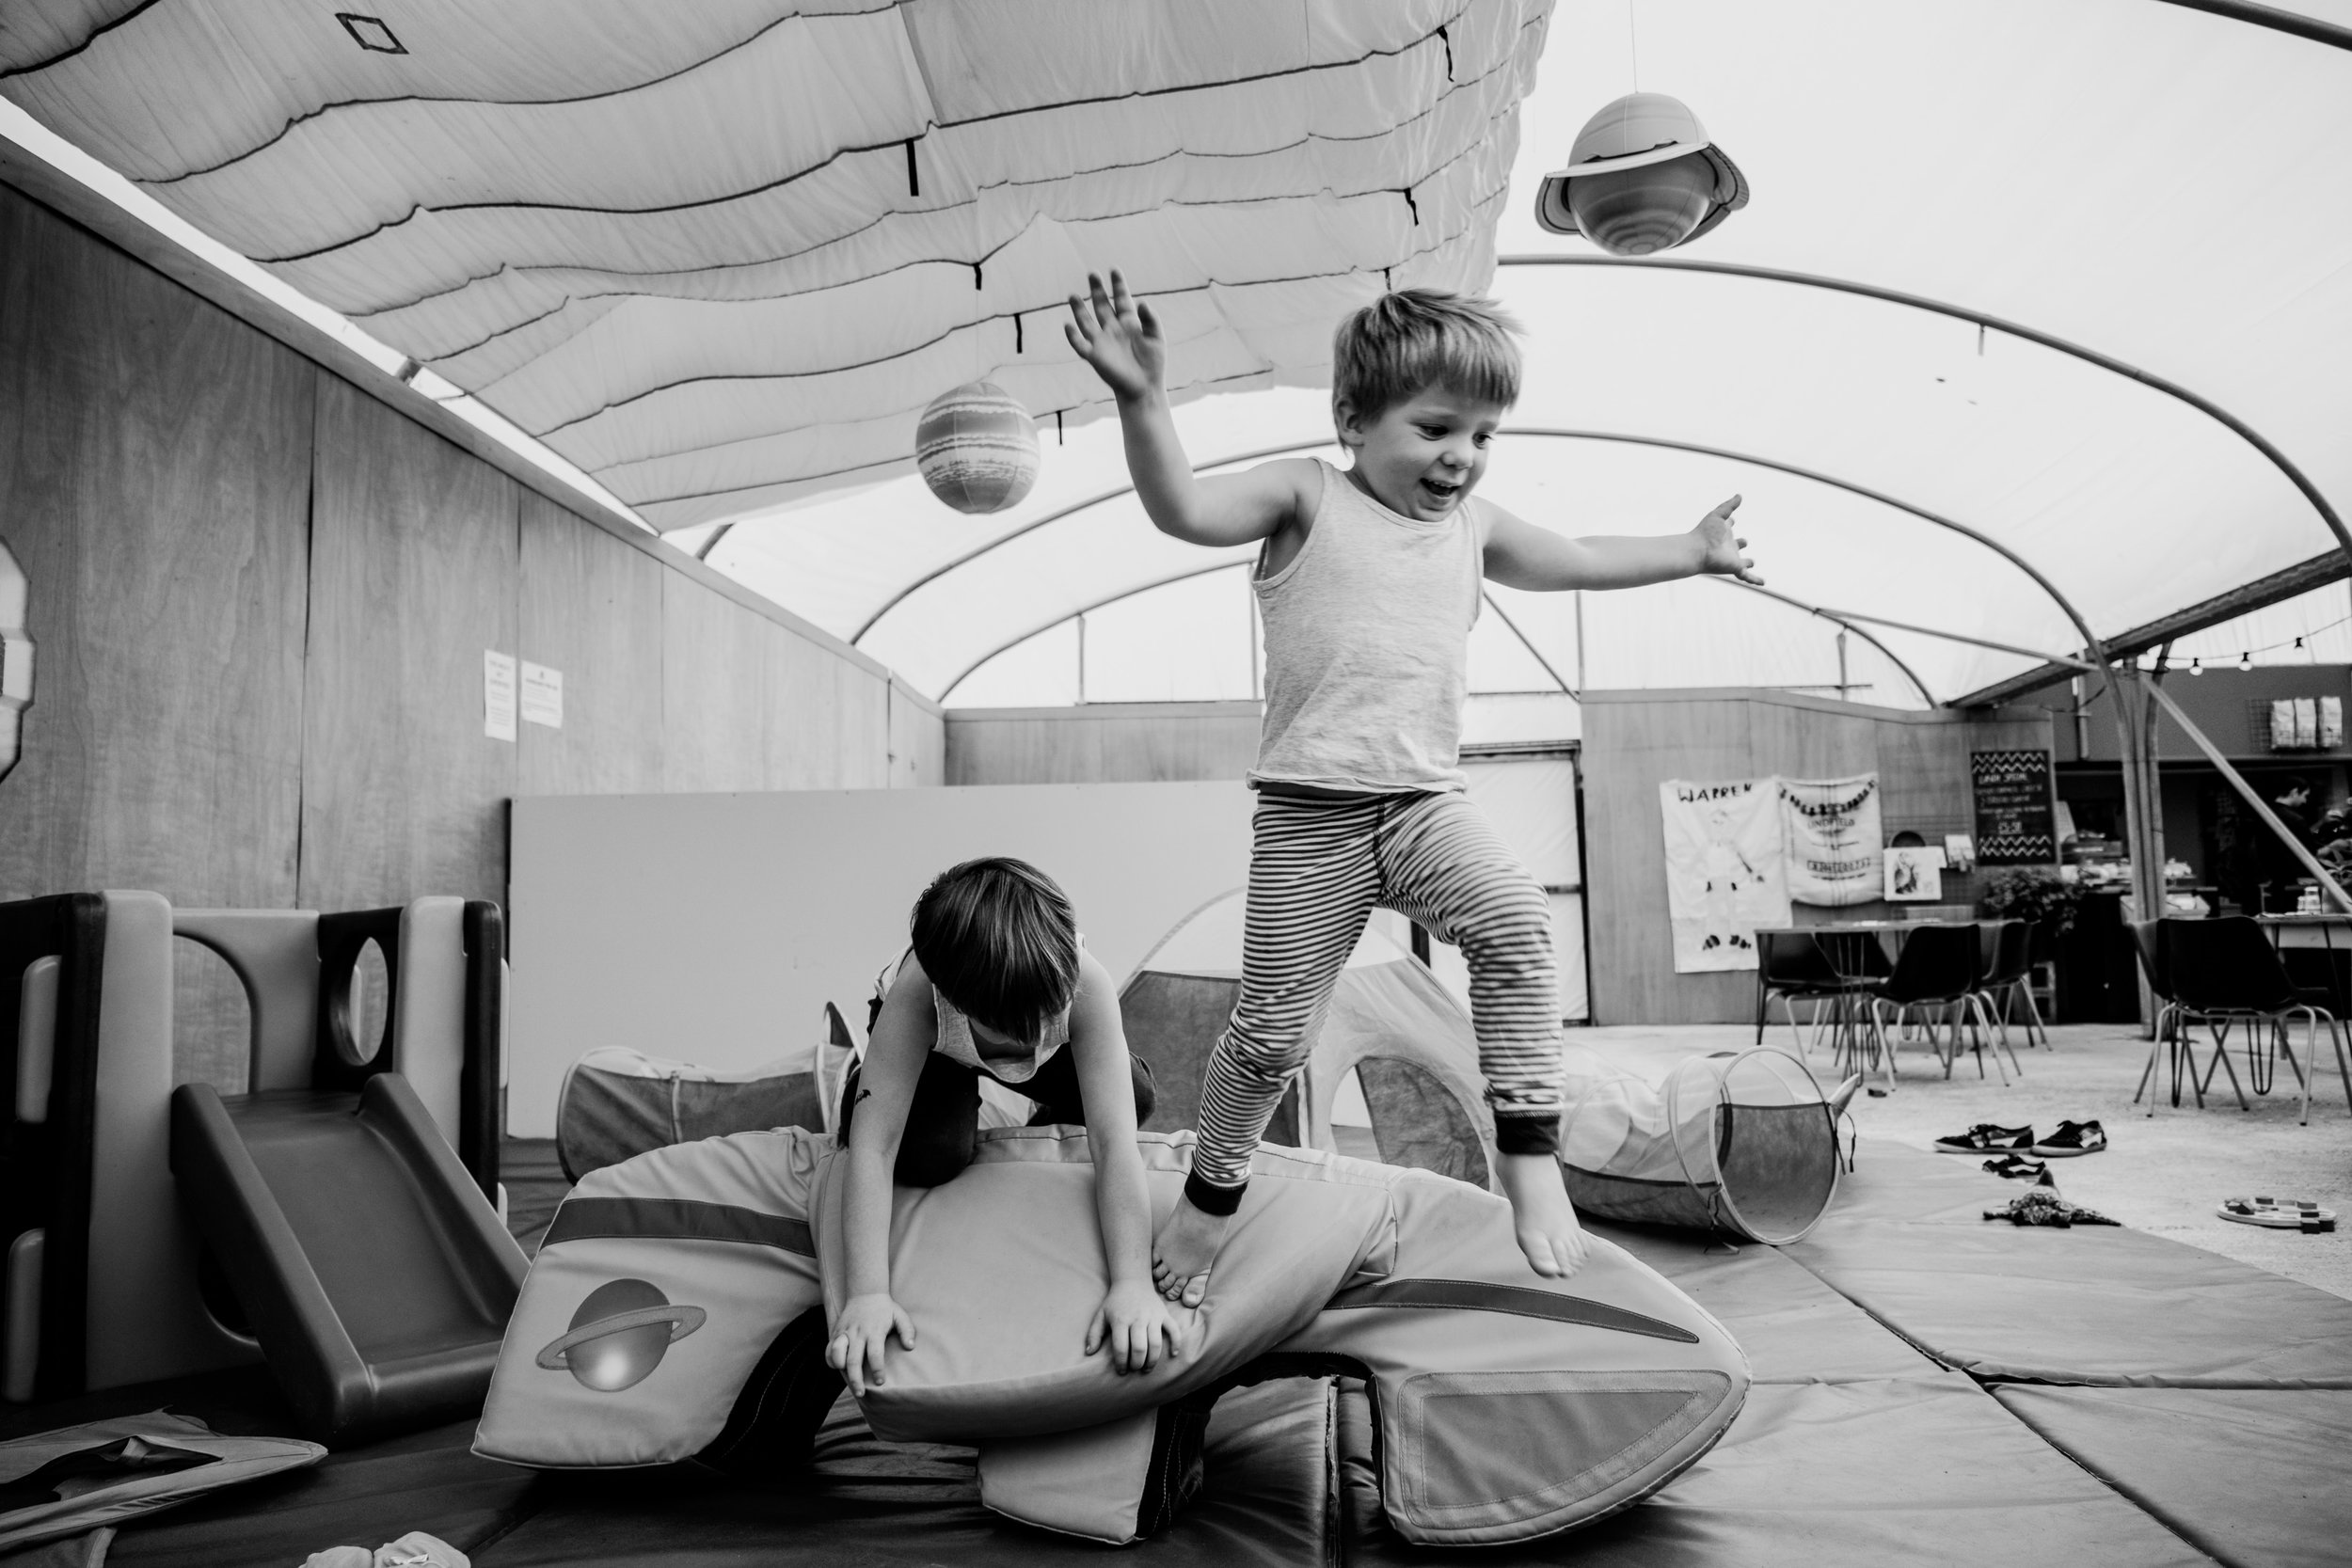 Sussex-mother-kids-jumping-in-play-area.jpg